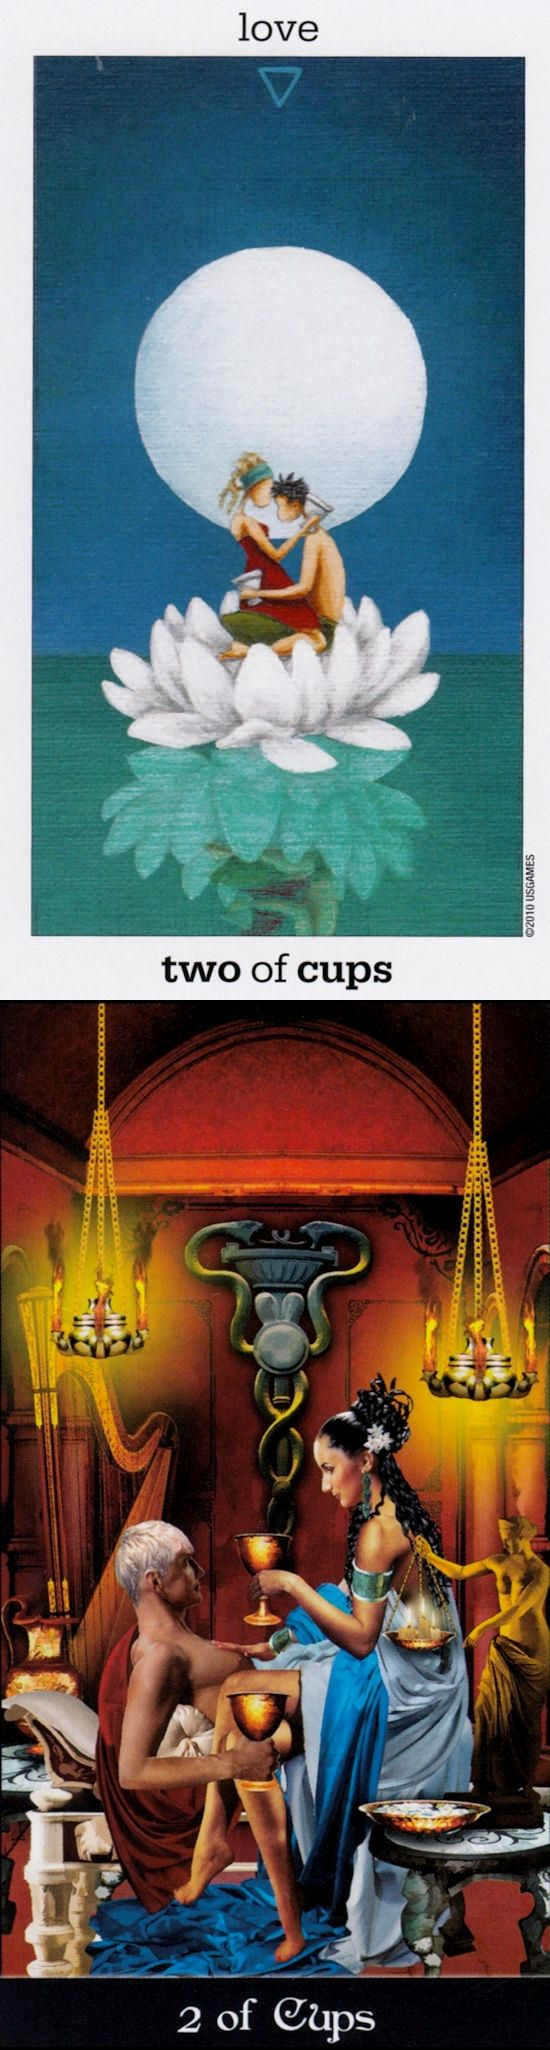 Two of Cups: intermingling and broken communication (reverse). Sunmoon Tarot deck and Apokalypsis Tarot deck: tarot jung, tarot angeles and lotus reading. Best 2018 tarot cards tattoo and psychic reading sign. #emperor #Wiccan #tarot #androidapp #ilovemywitchyways #ios